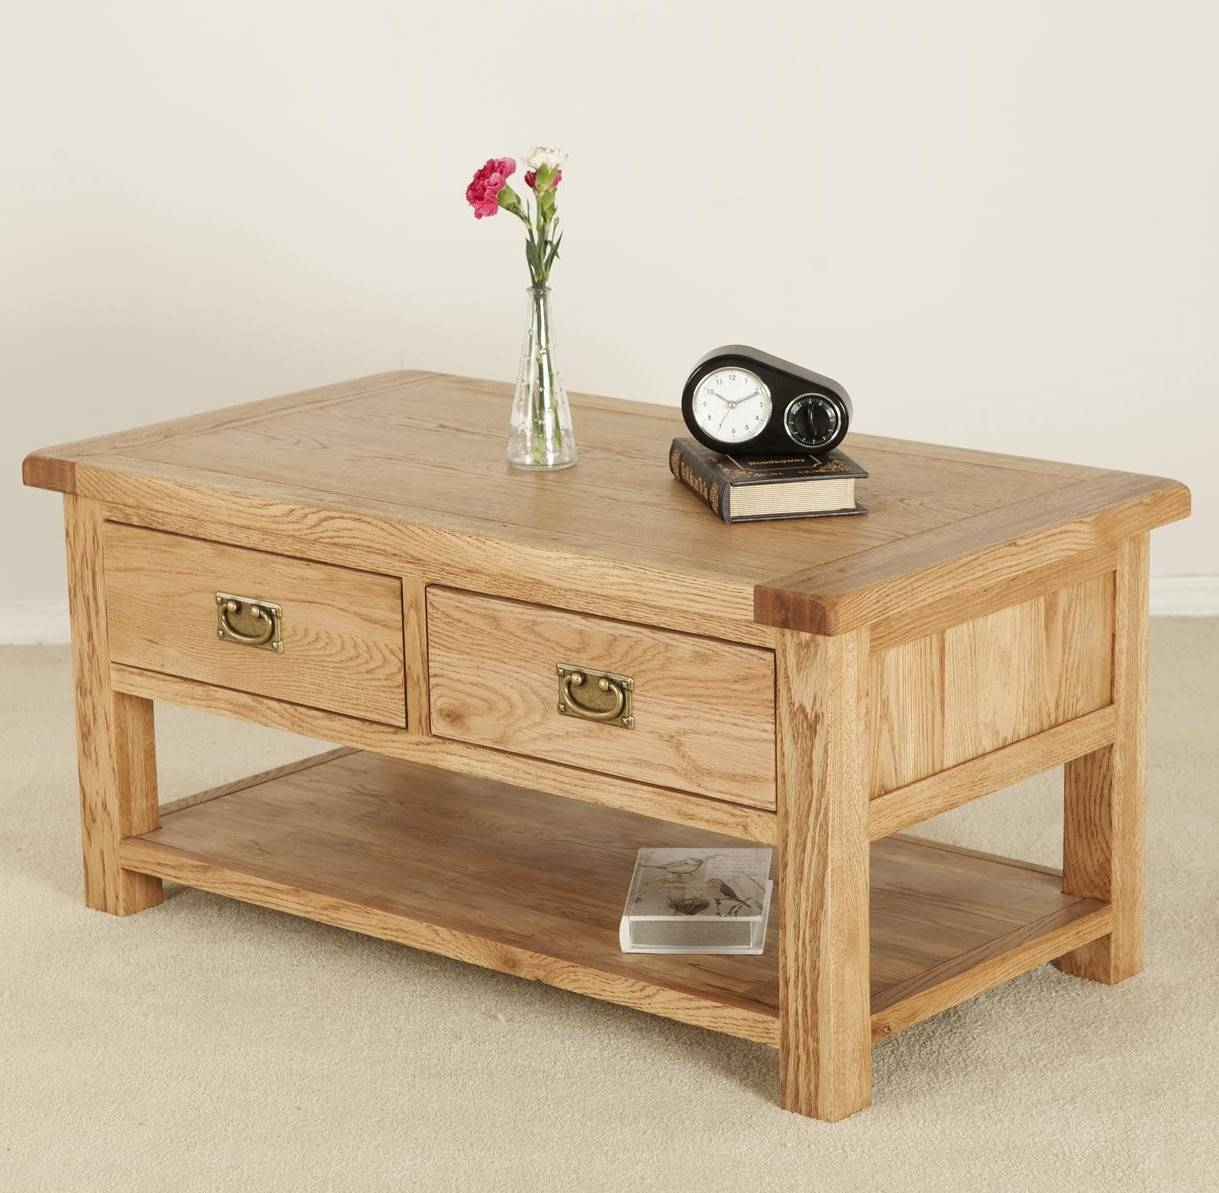 Solid Wood Coffee Tables With Drawers | Coffee Tables Decoration intended for Small Coffee Tables With Drawer (Image 28 of 30)